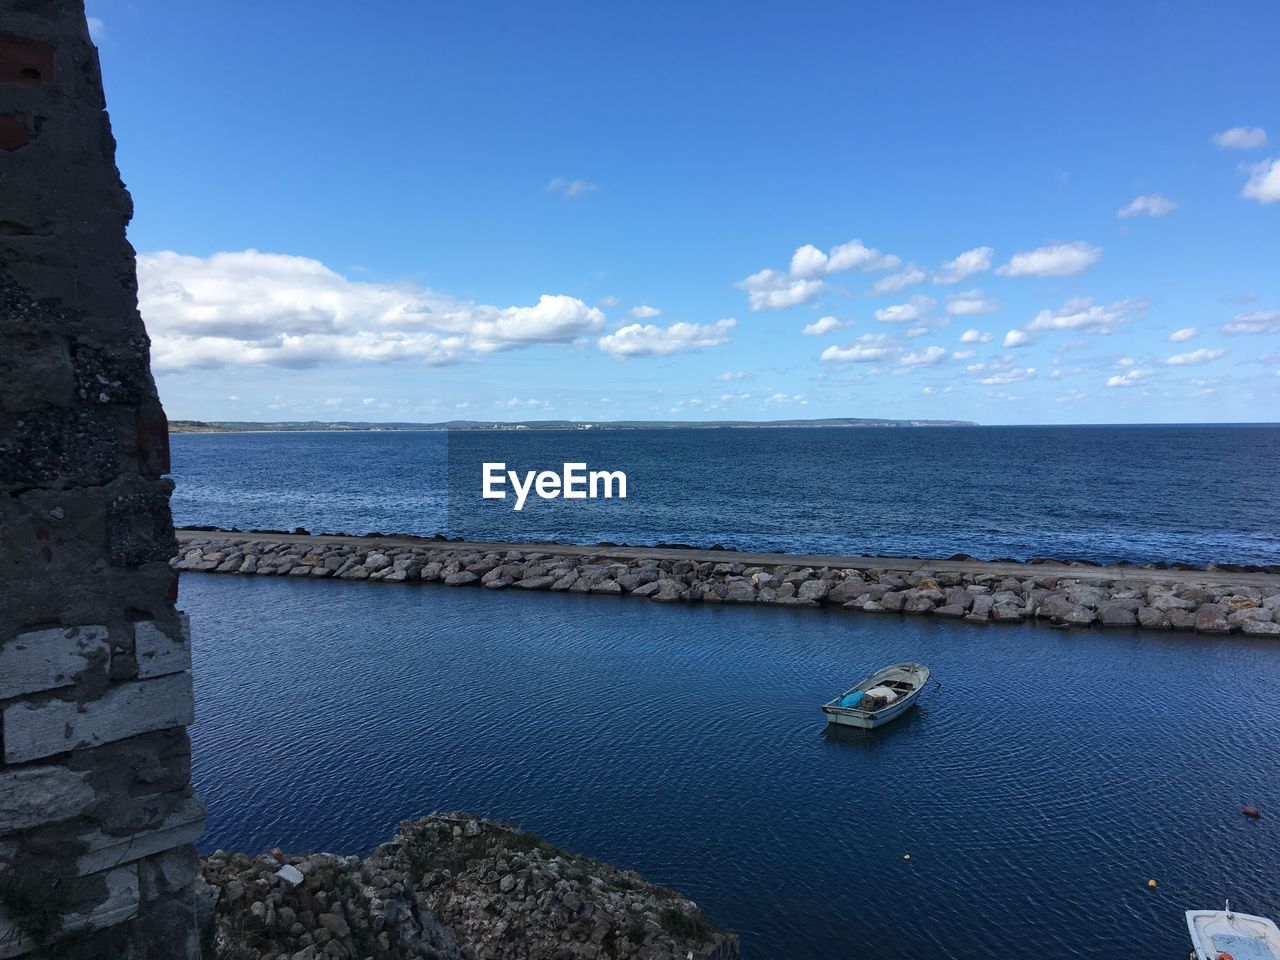 water, sea, sky, cloud - sky, scenics - nature, horizon, beauty in nature, tranquil scene, blue, horizon over water, tranquility, nature, day, no people, rock, idyllic, outdoors, solid, non-urban scene, groyne